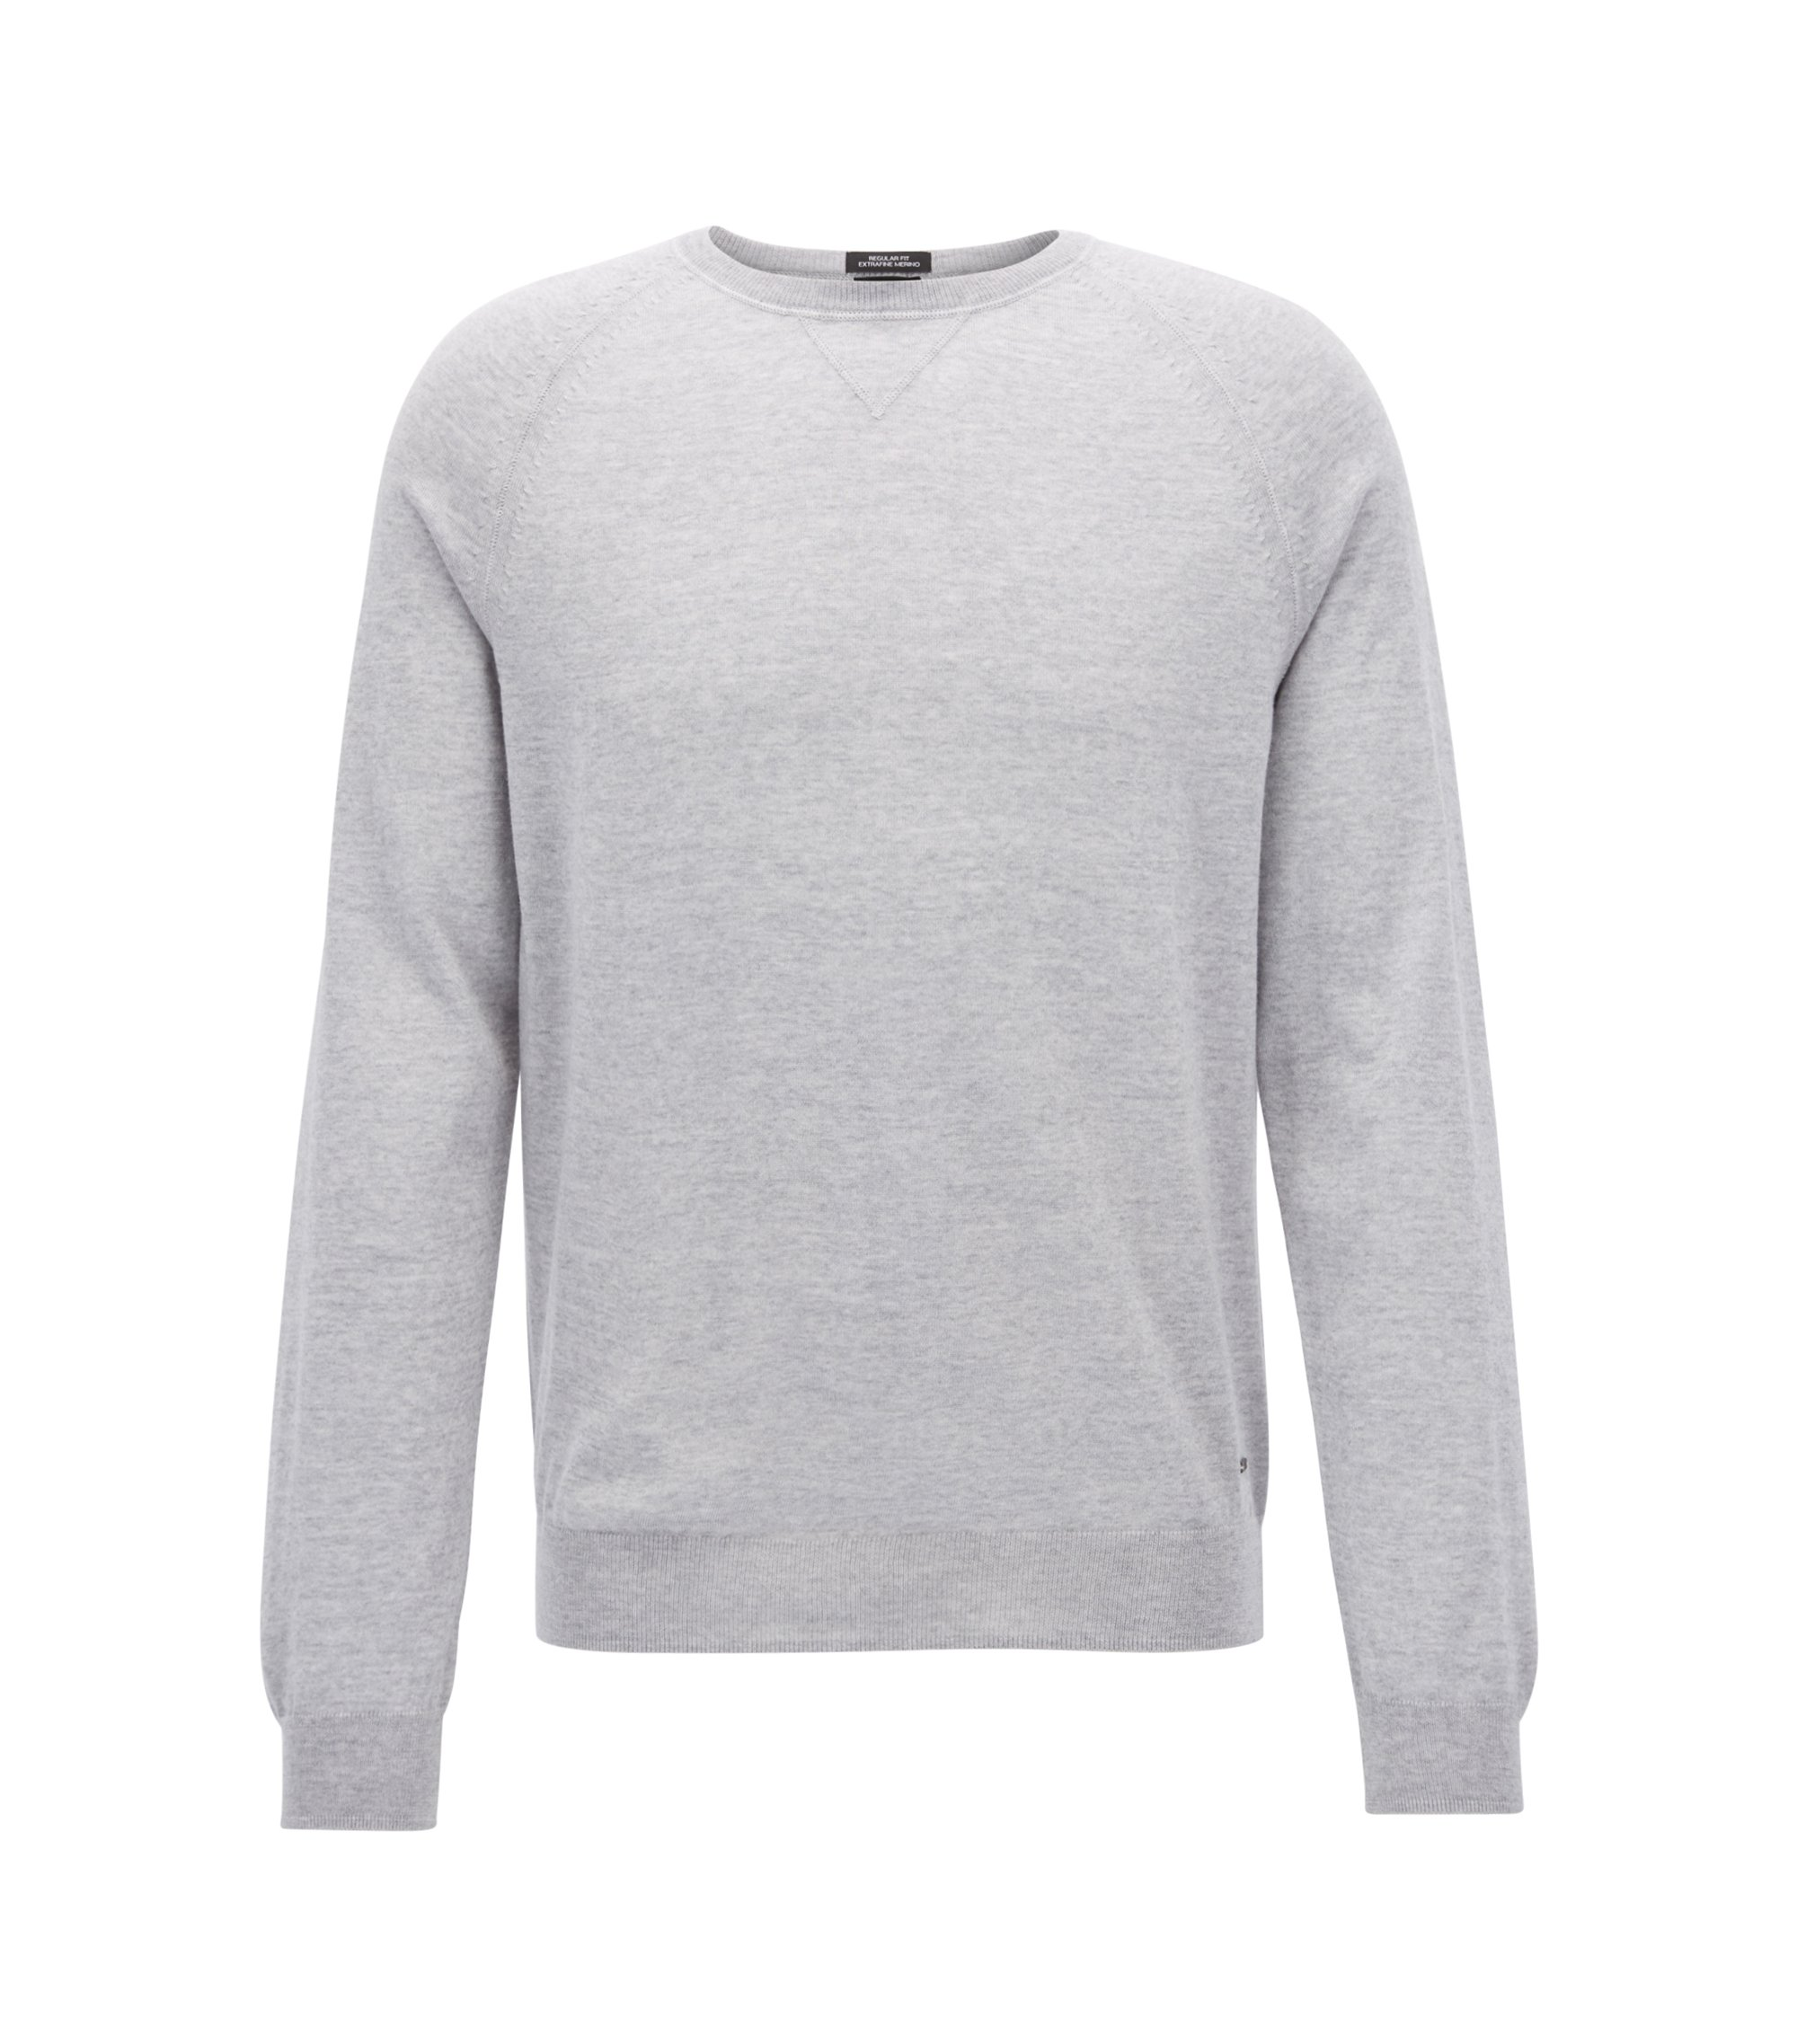 Crew-neck sweater in Merino wool, Light Grey